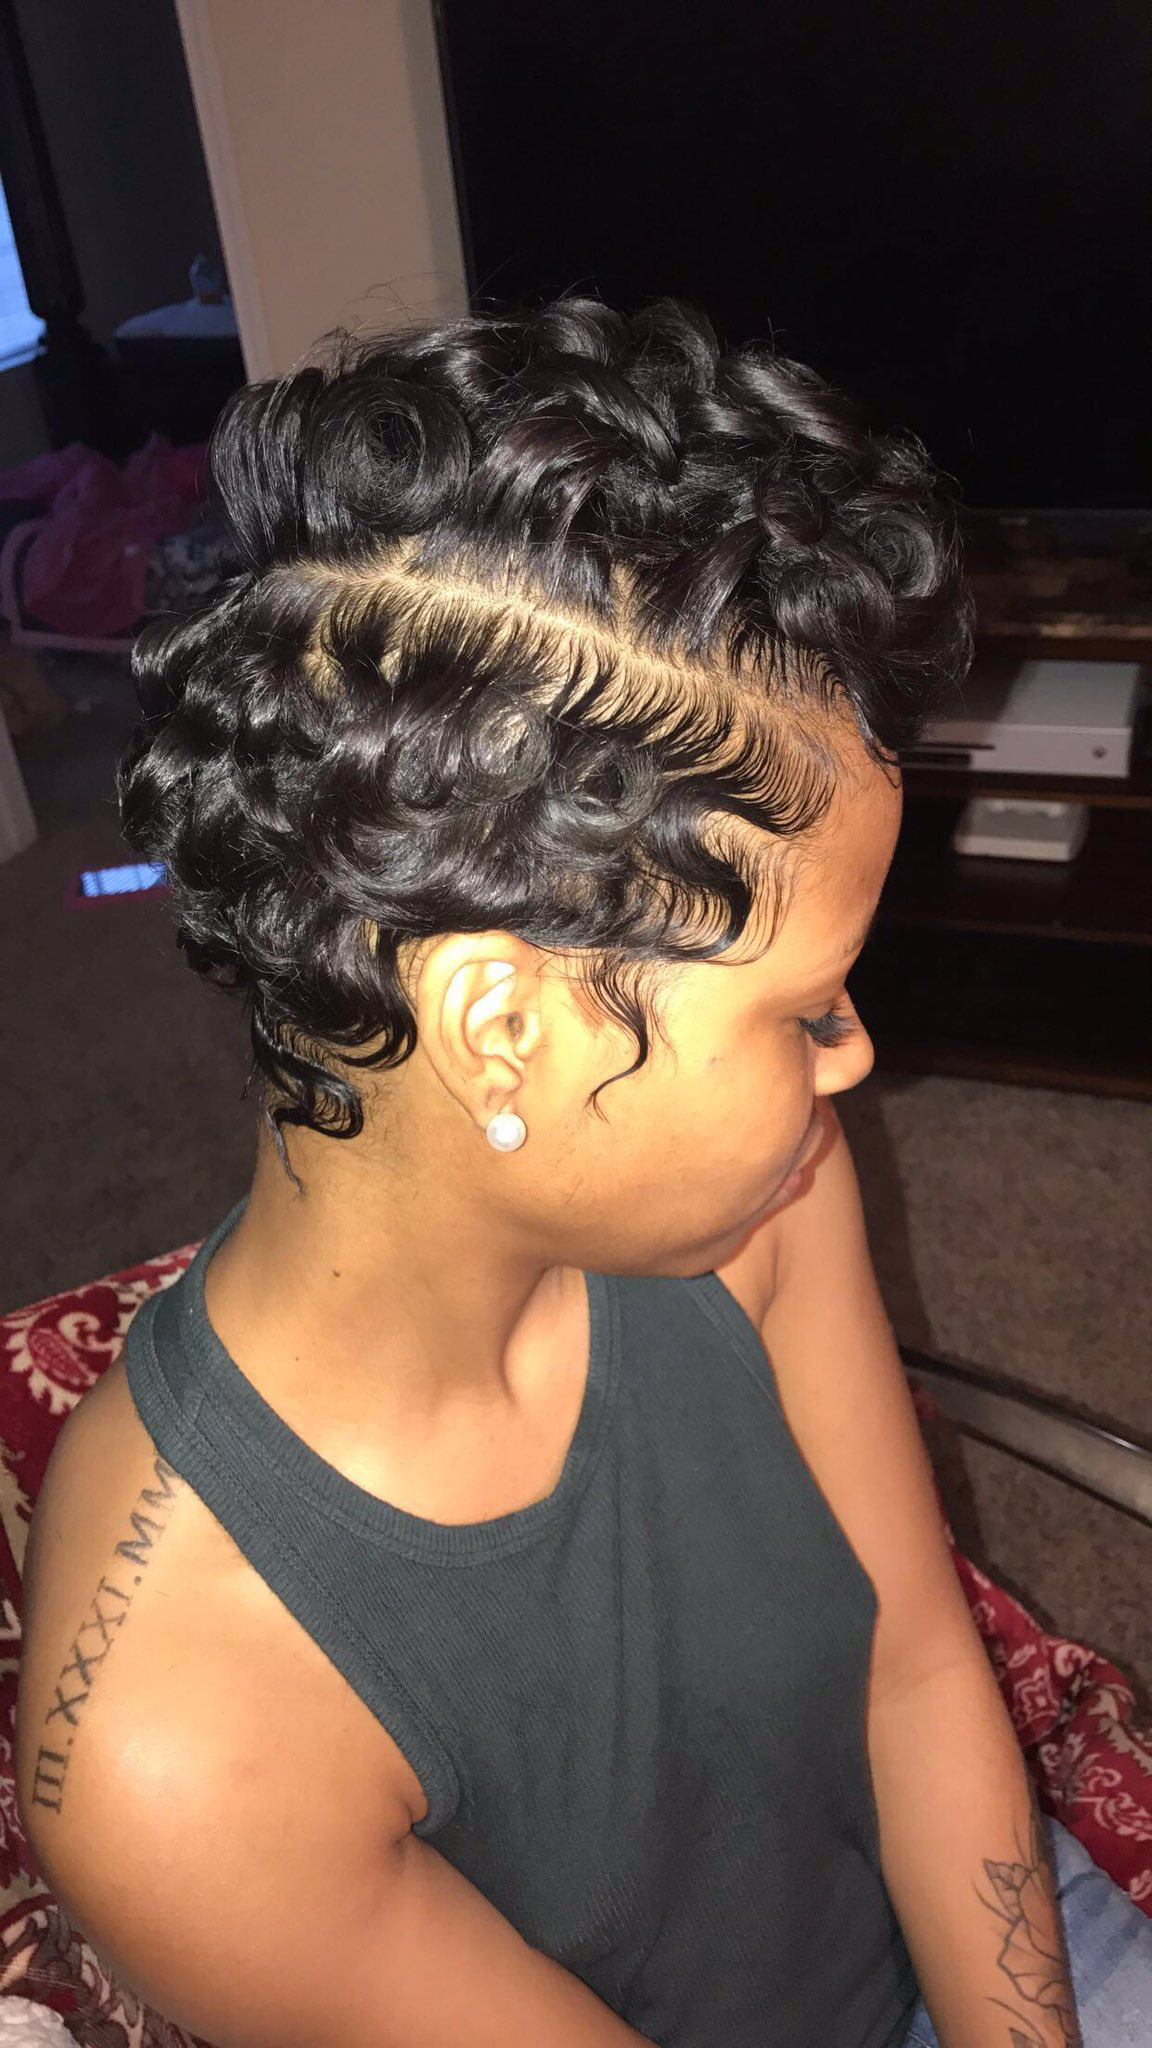 Pinterest Kyarasvg Fingerwave Finger Waves Short Hair Natural